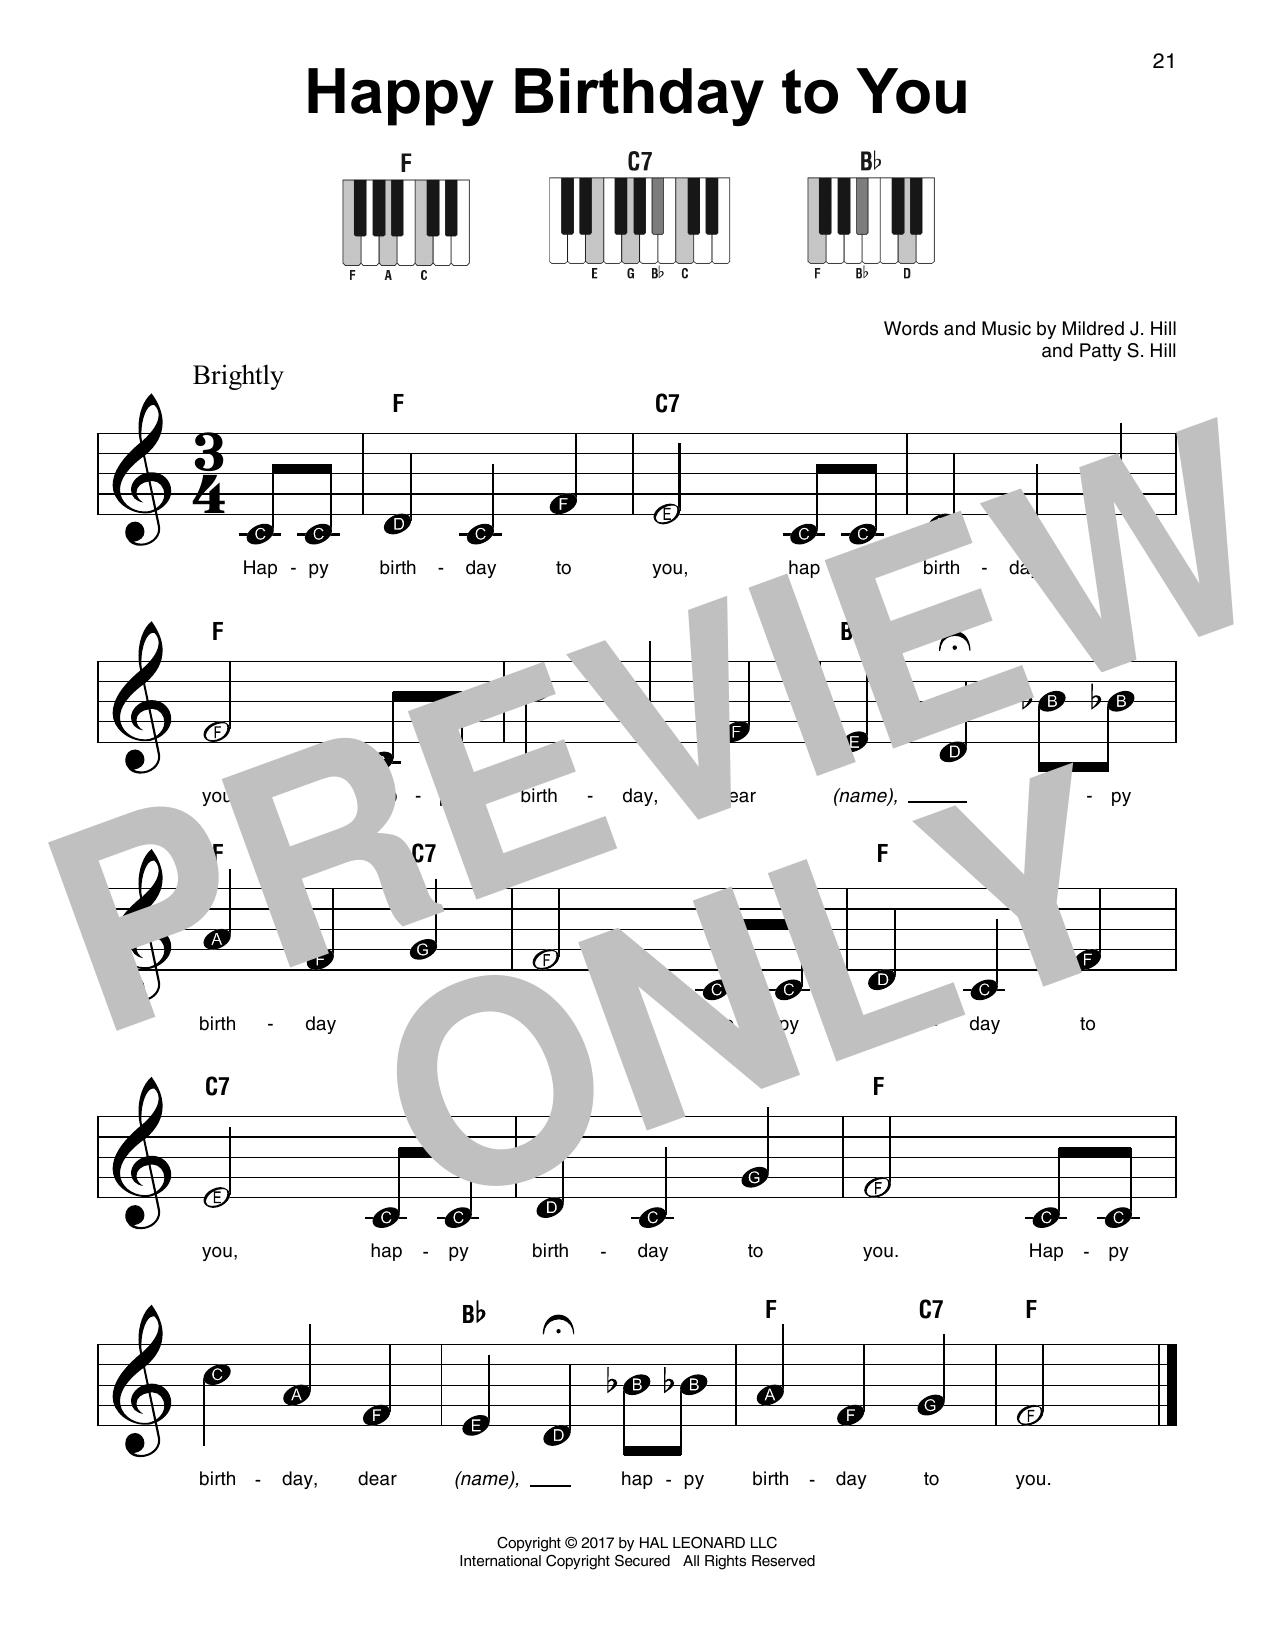 piano notes happy birthday to you ; HL_DDS_12304298cs1VpHCb7